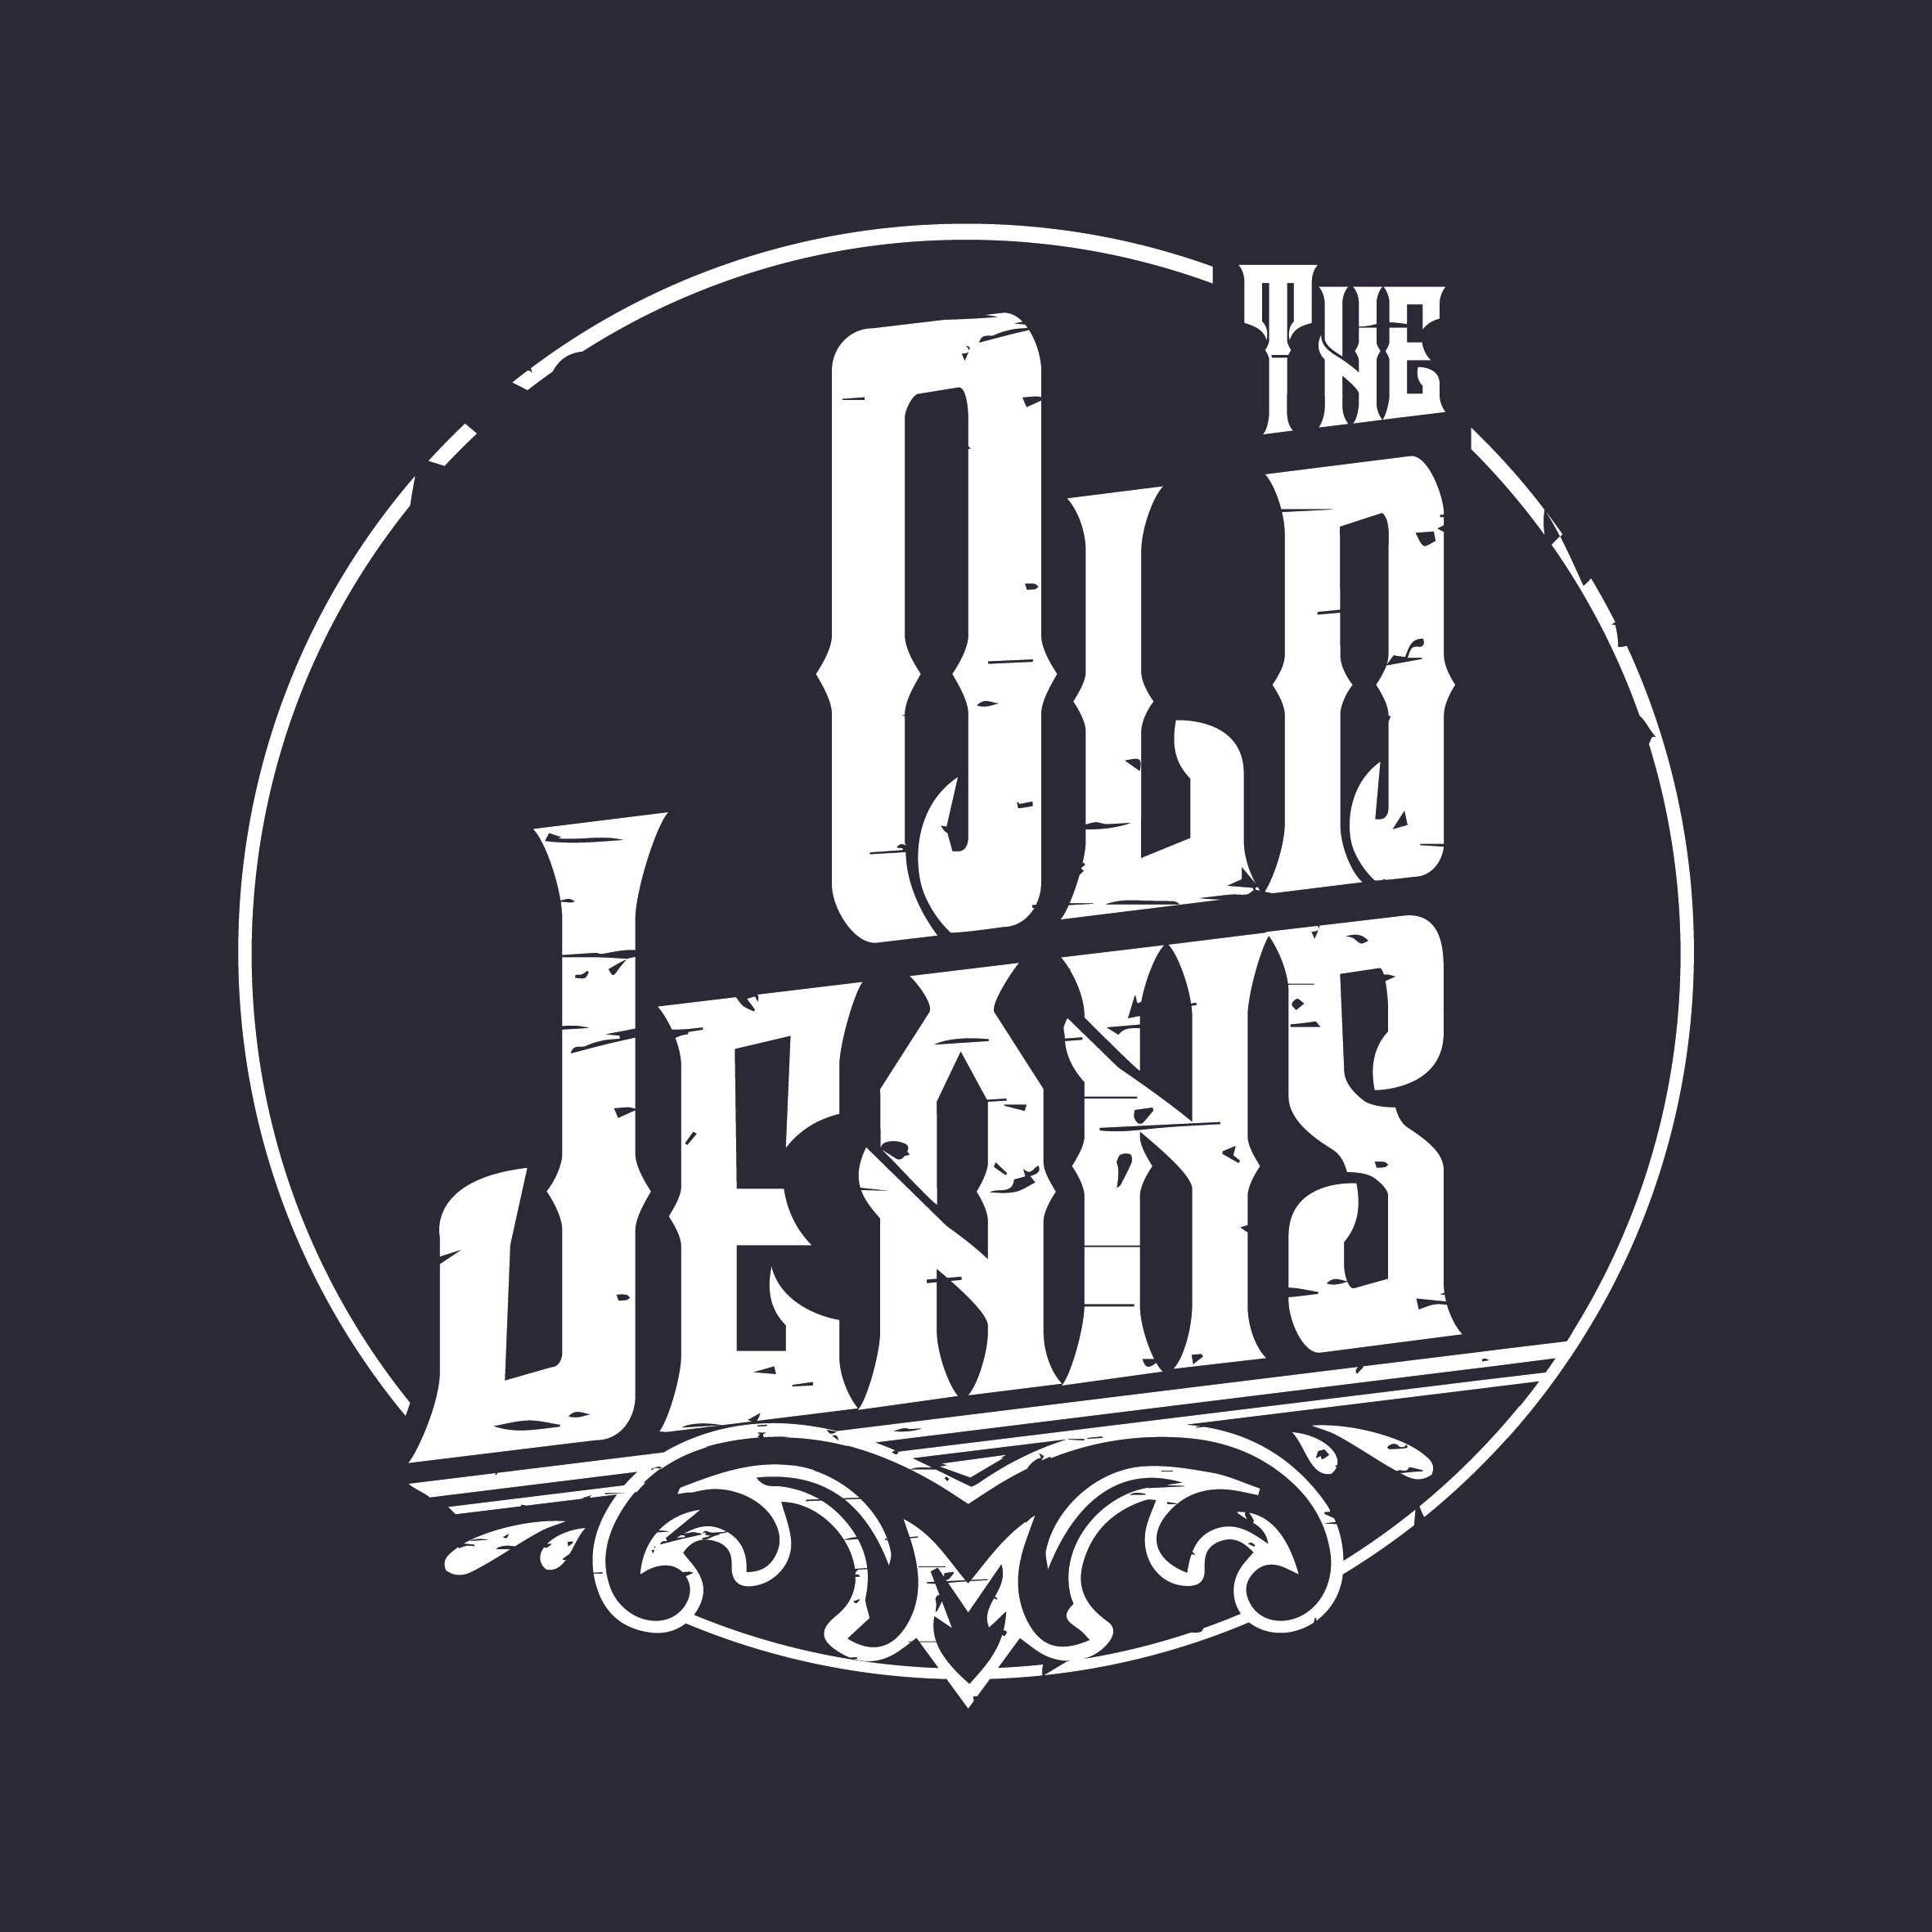 The Old jeans - logo